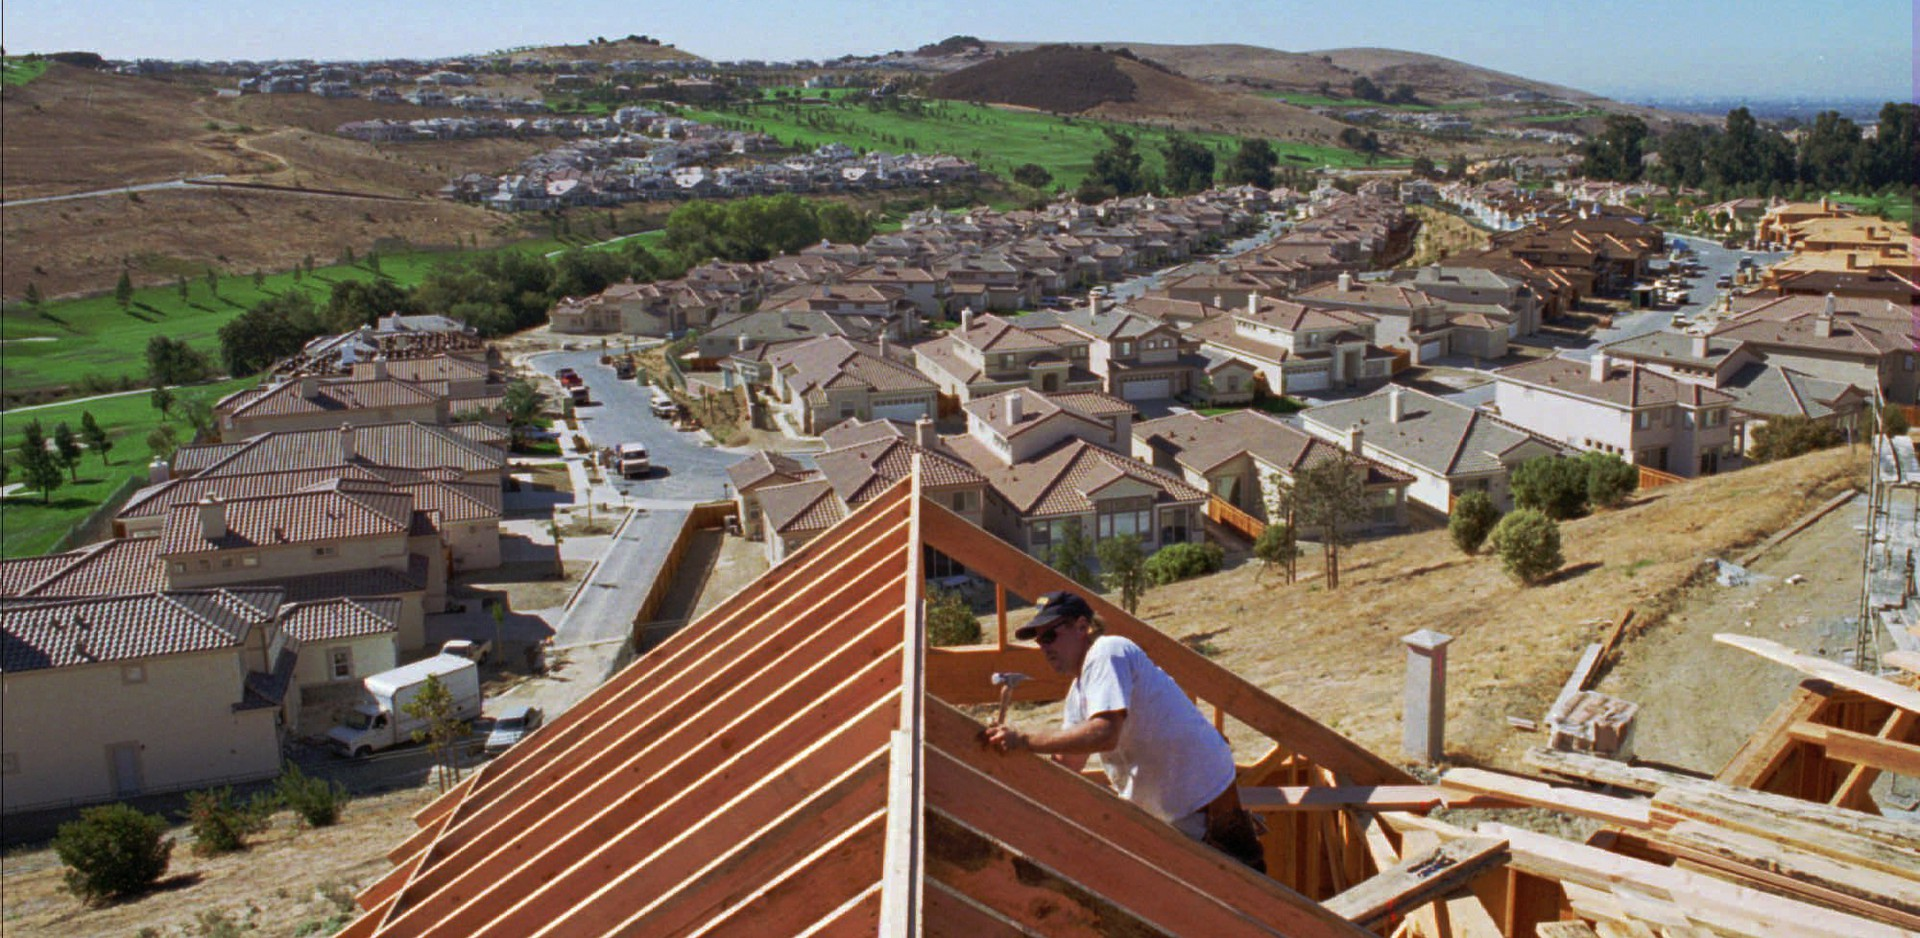 A worker builds new homes in San Jose.